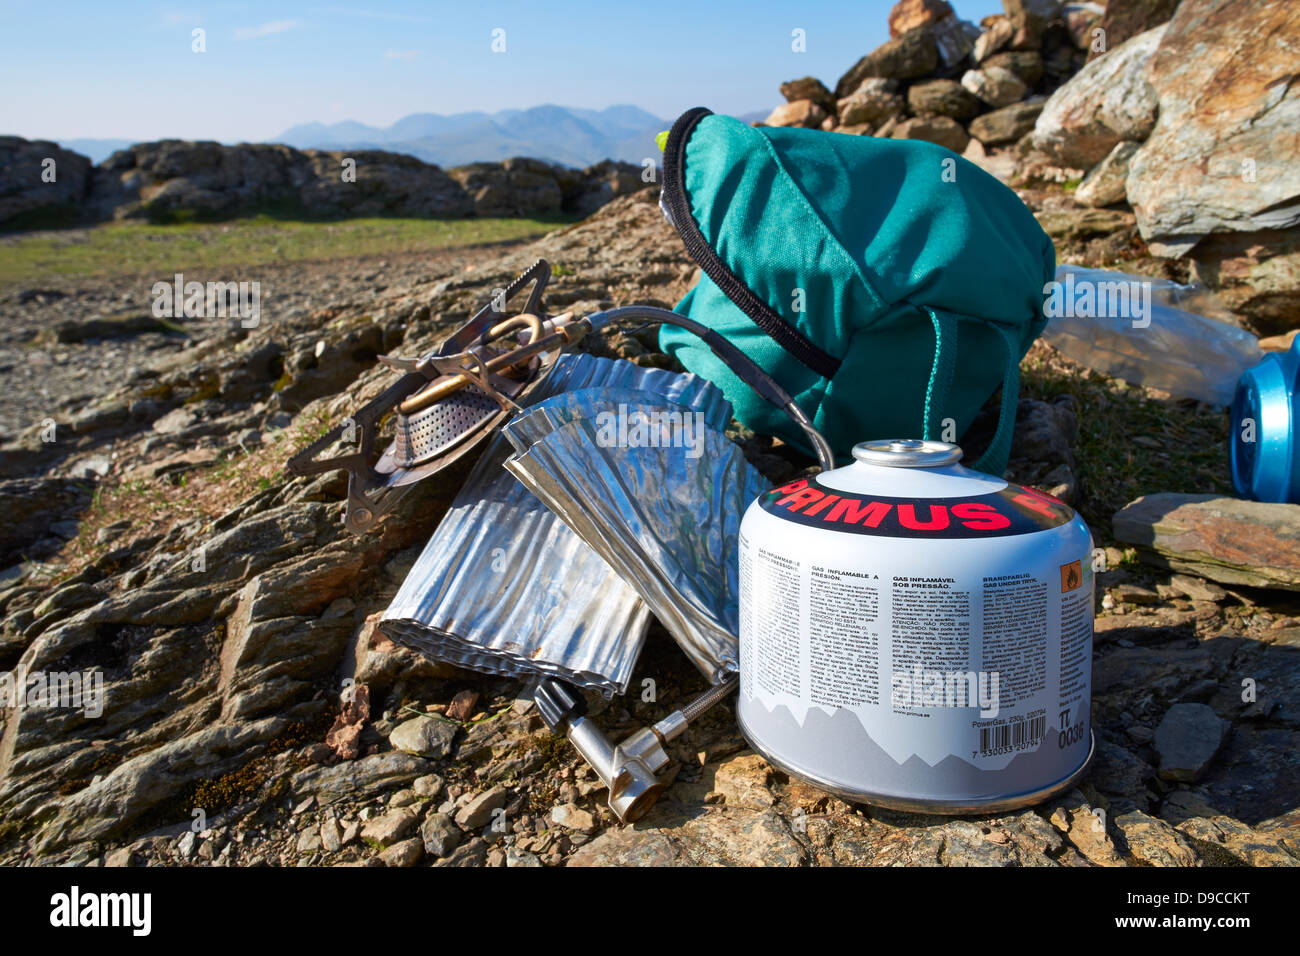 Camping stove, gas and pans on the summit of a Robinson in the Lake District. - Stock Image